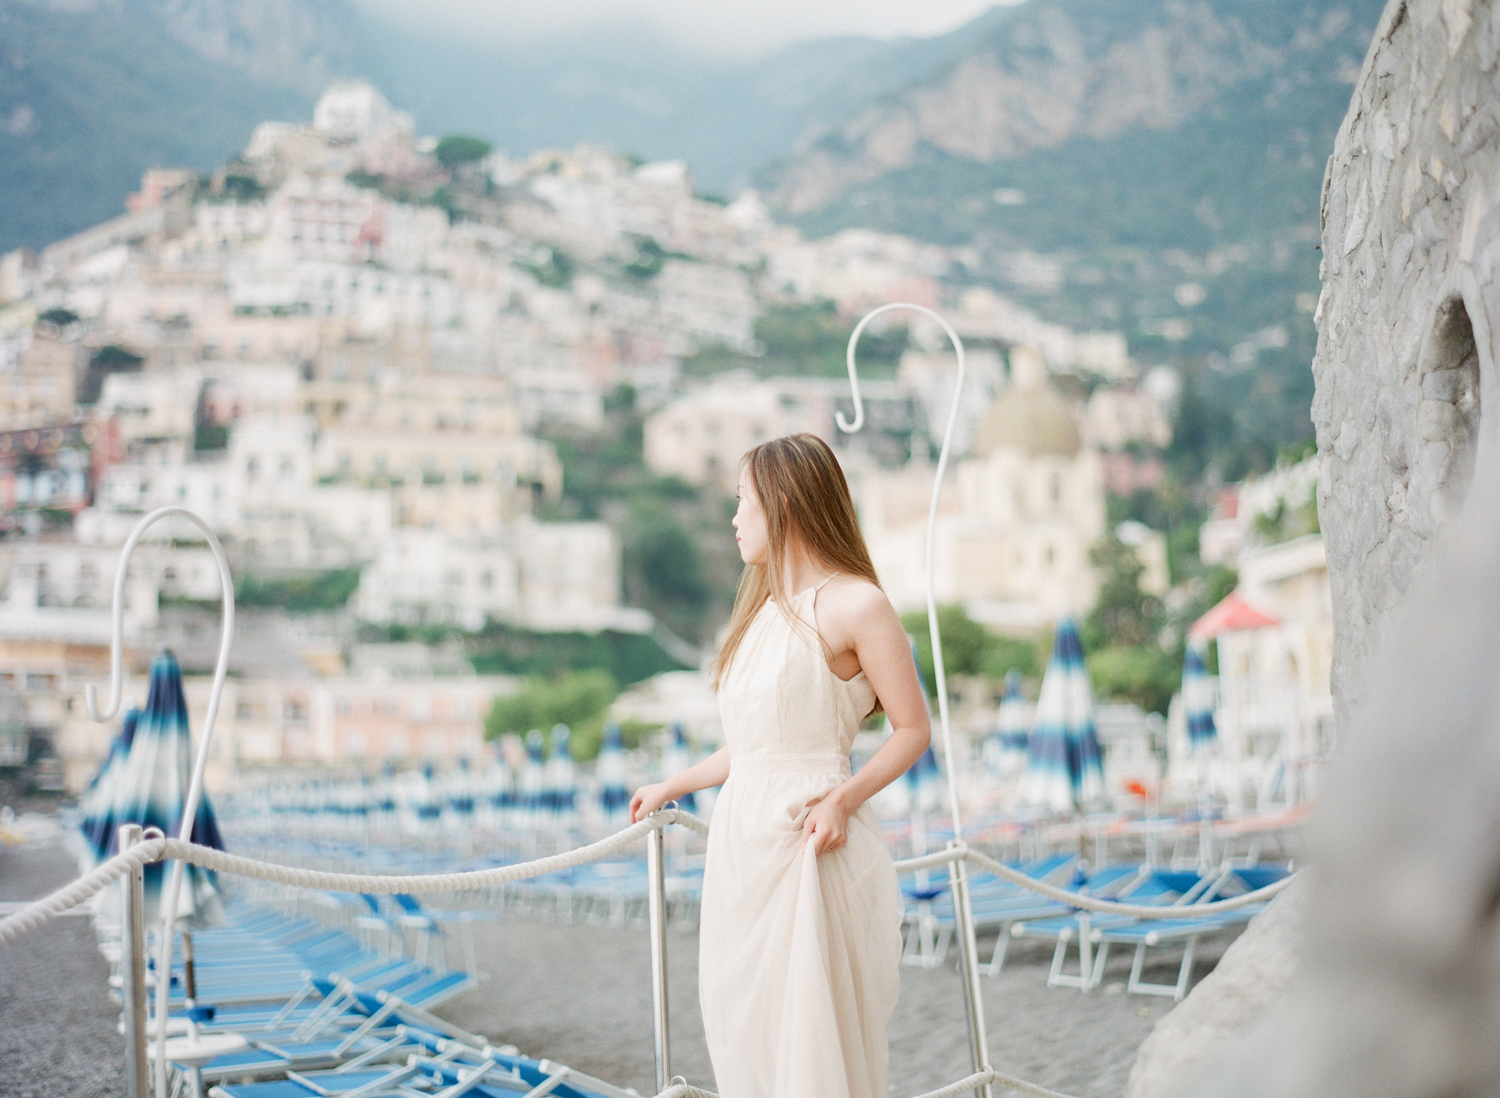 positano wedding anniversary amalfi coast wedding photographer positano film wedding photographer 38.JPG